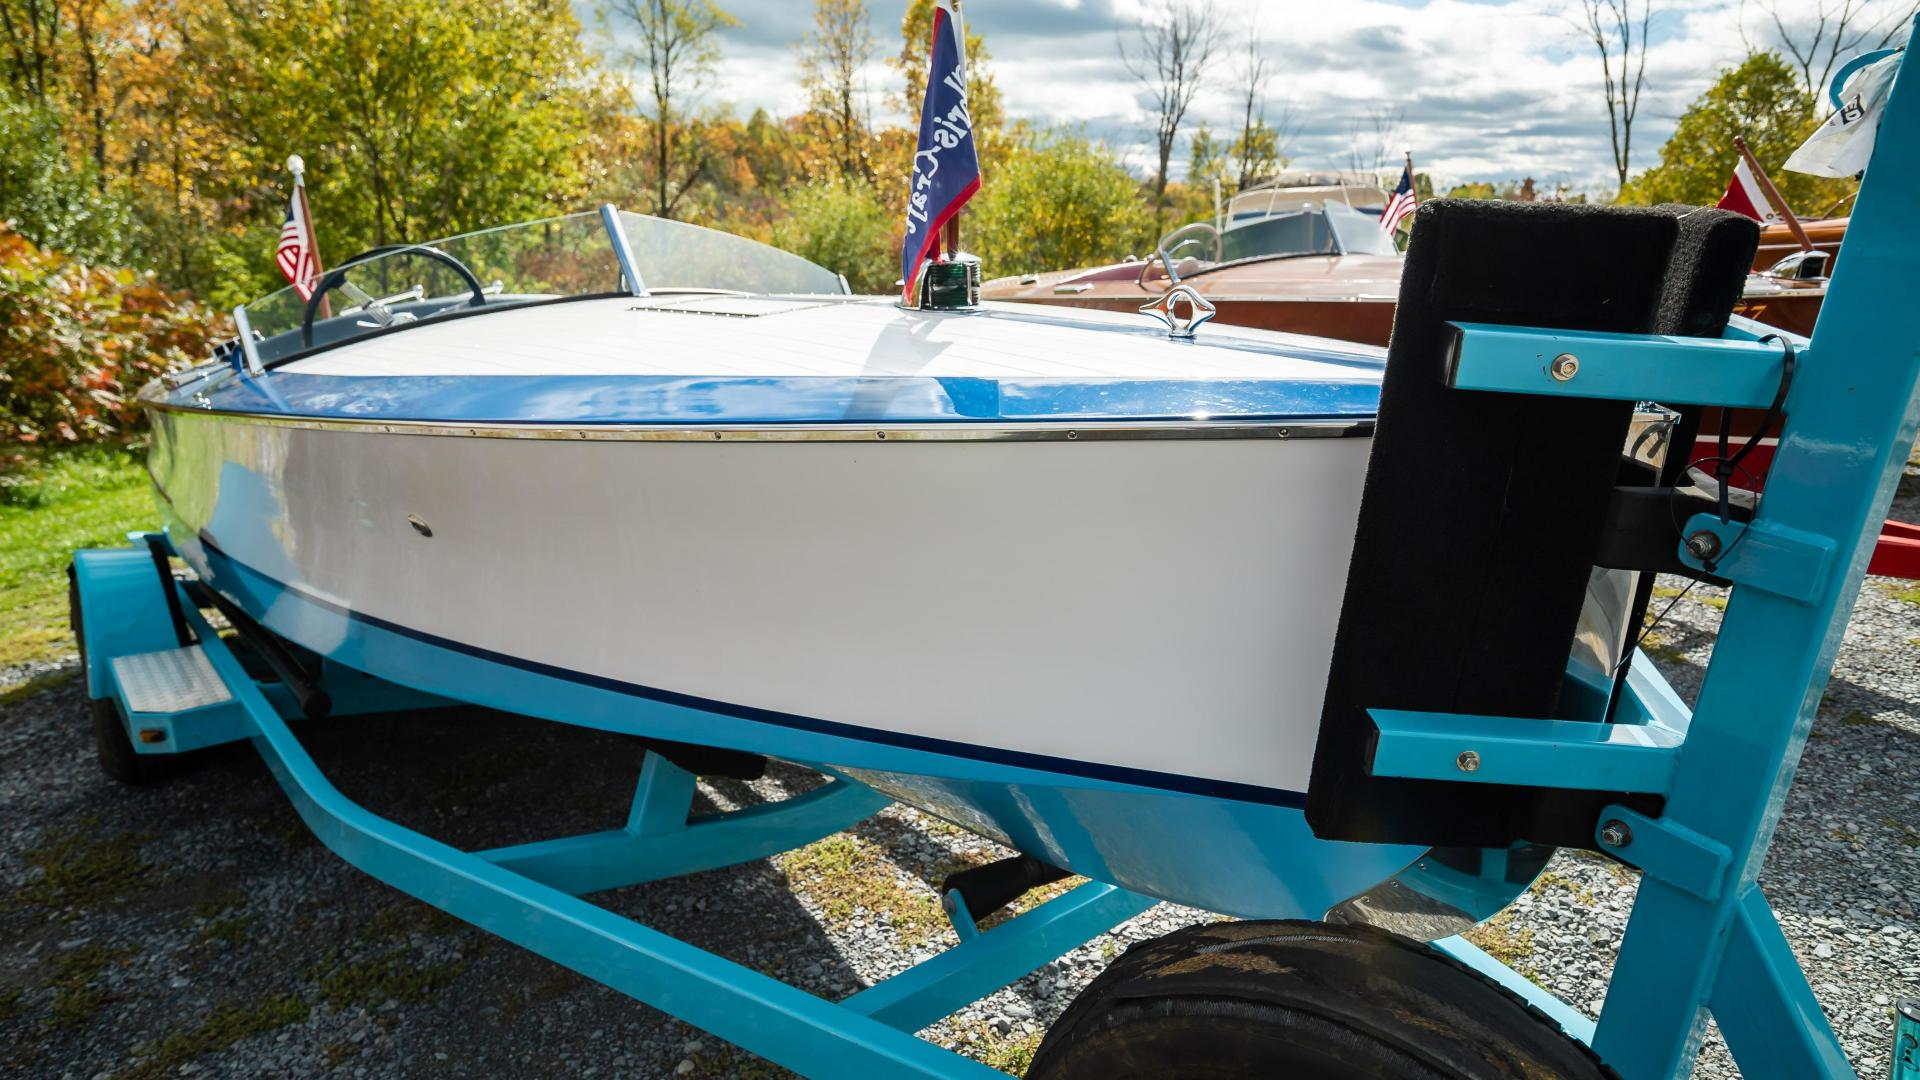 Chris-Craft-Special Race boat 1937 -Clayton-New York-United States-1546445 | Thumbnail